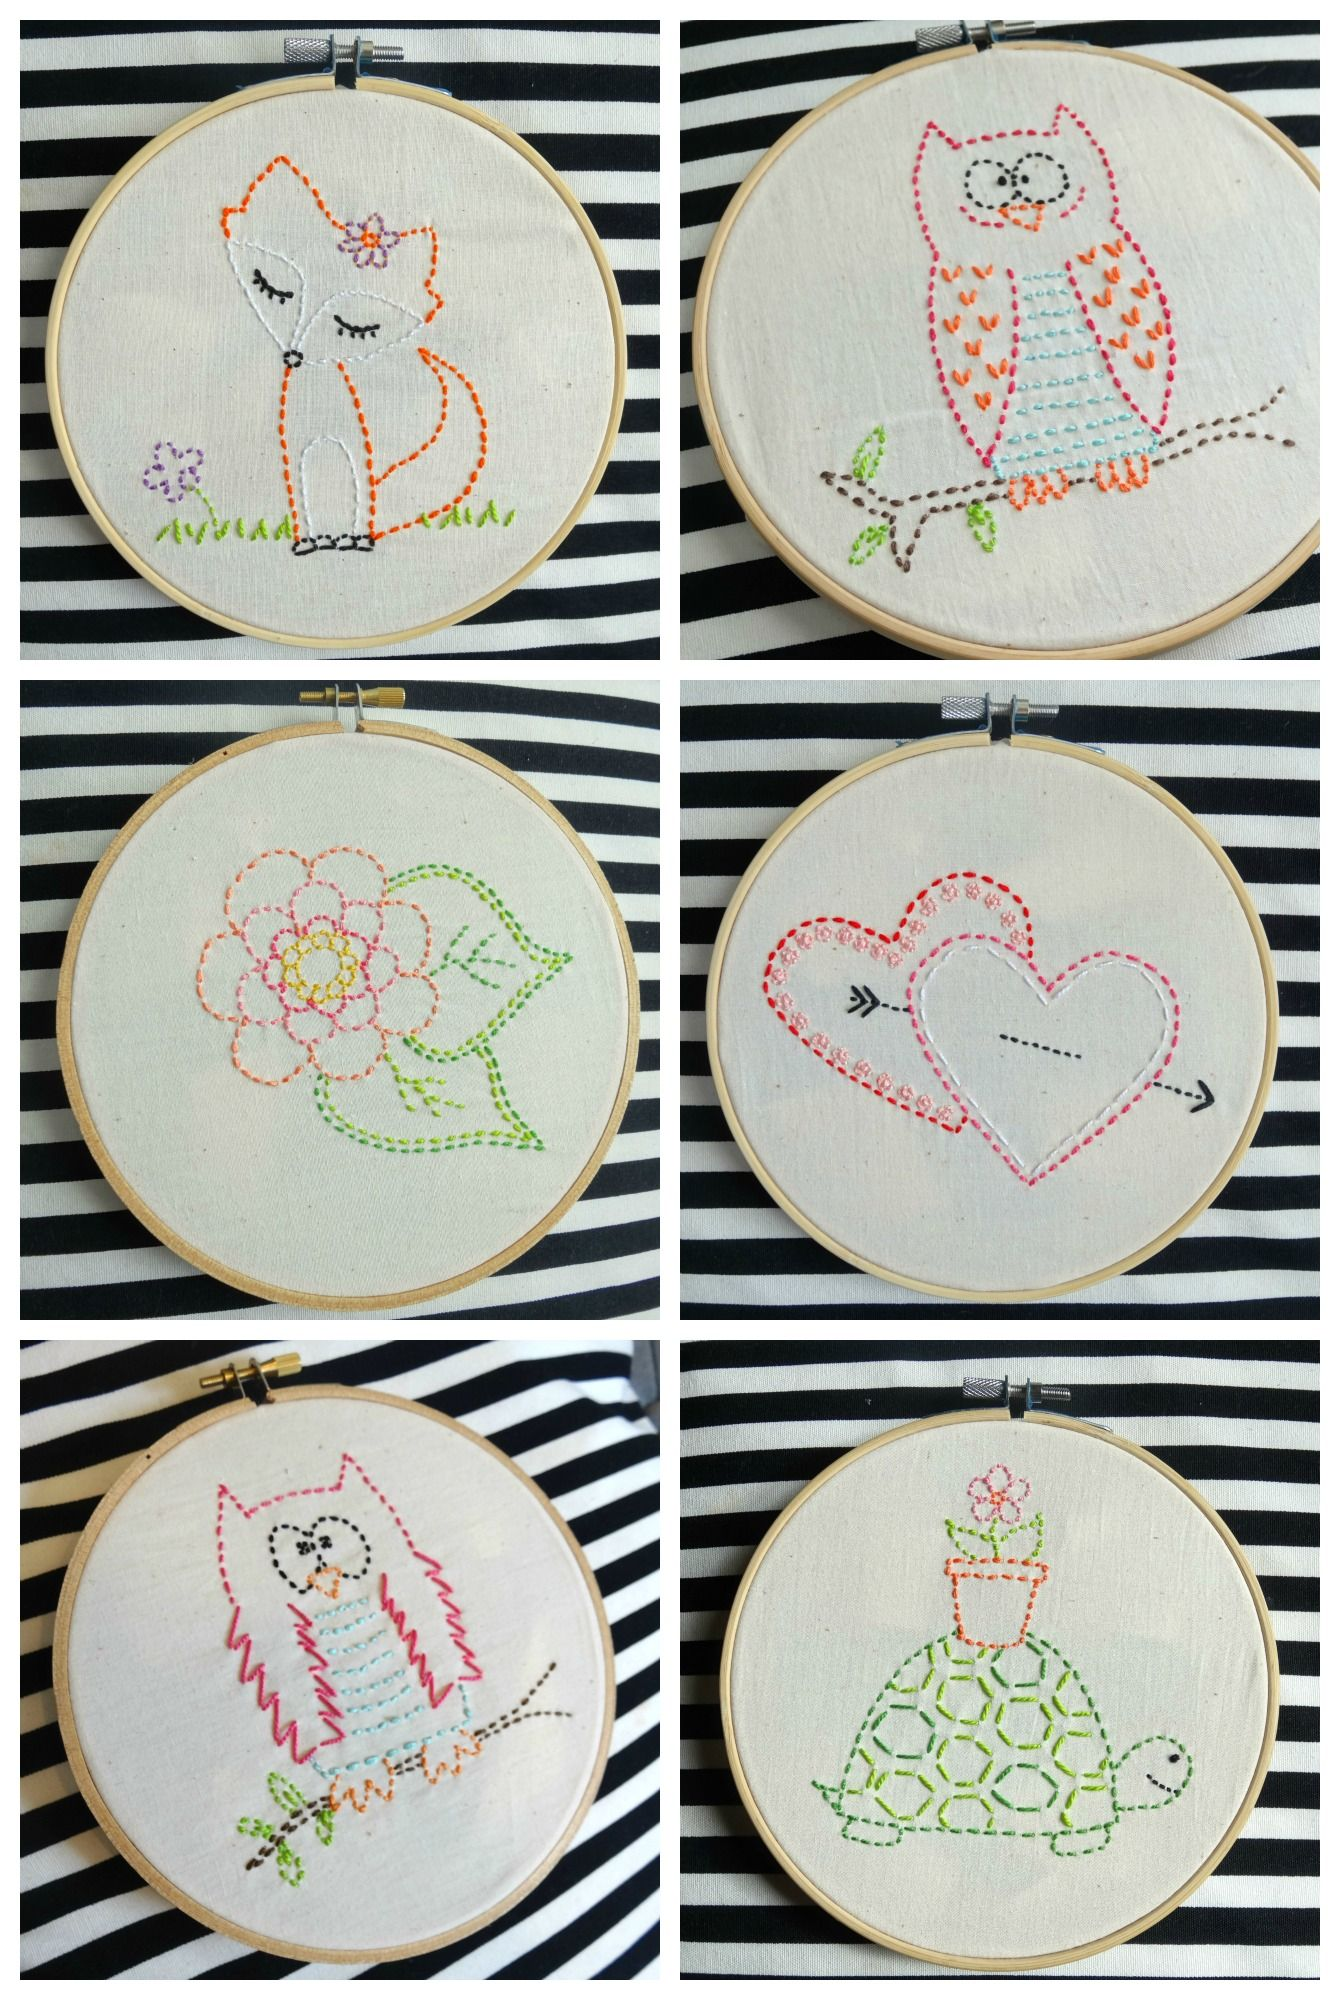 Simple Embroidery Designs Giveaway Simple Embroidery Simple Embroidery Designs Embroidery Designs